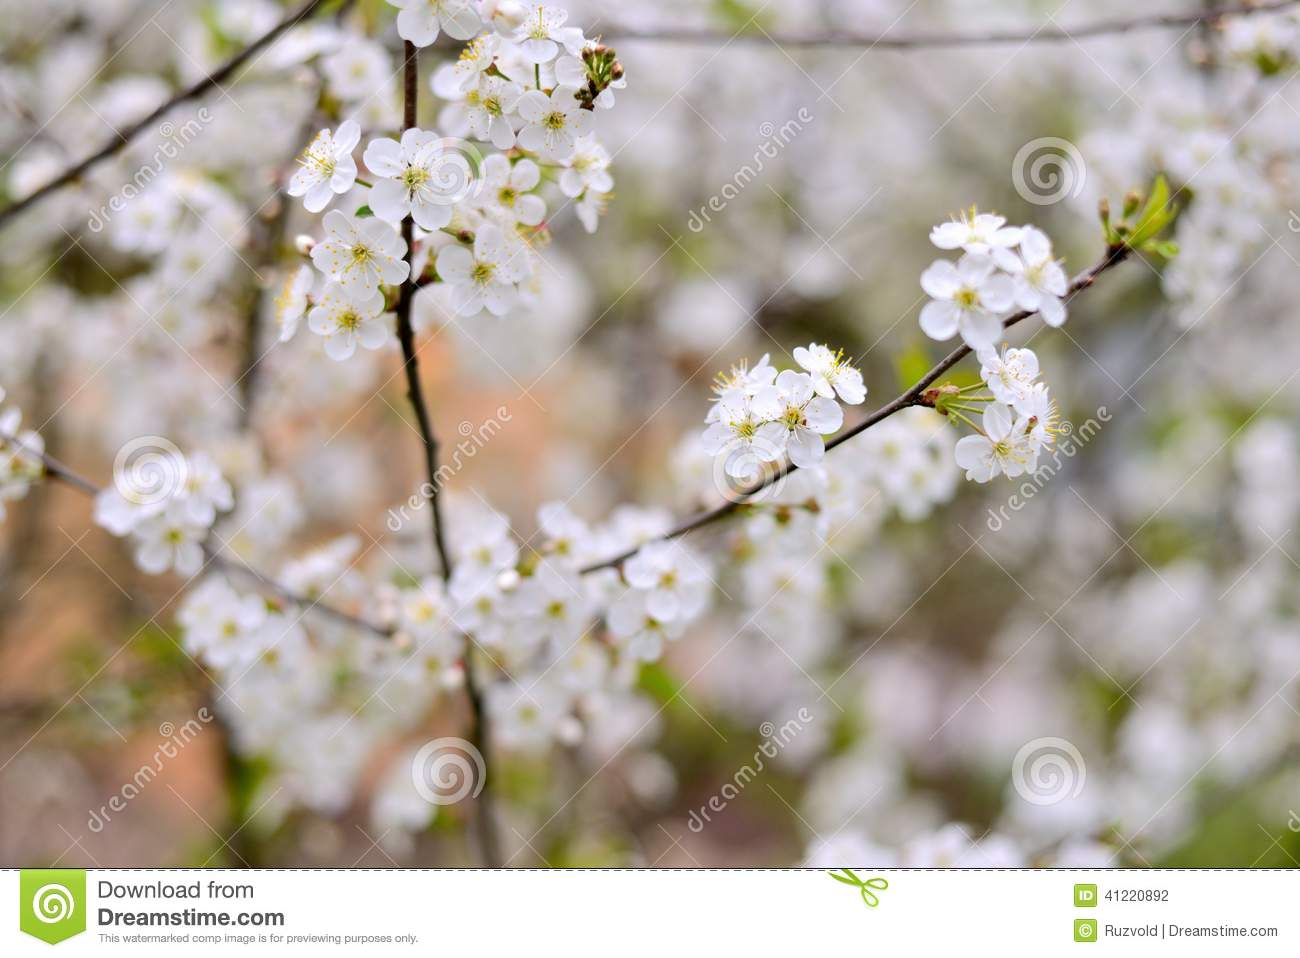 Branch Of A Tree With White Flowers Stock Photo Image Of Cherry